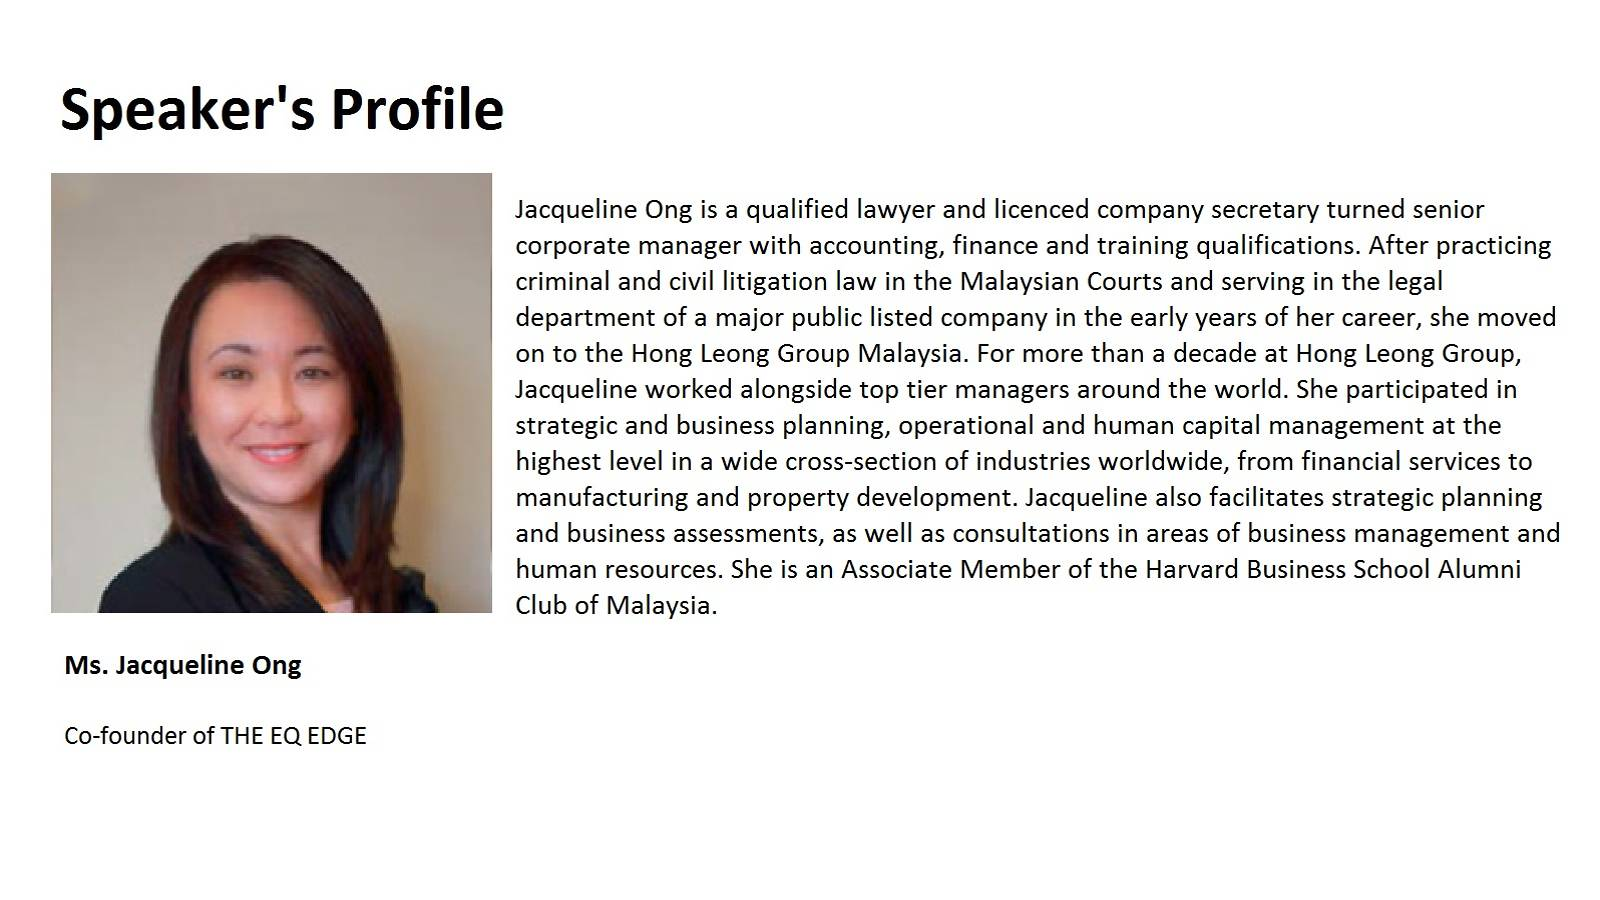 Dec seminar_Speakers Profile [Jacqueline]